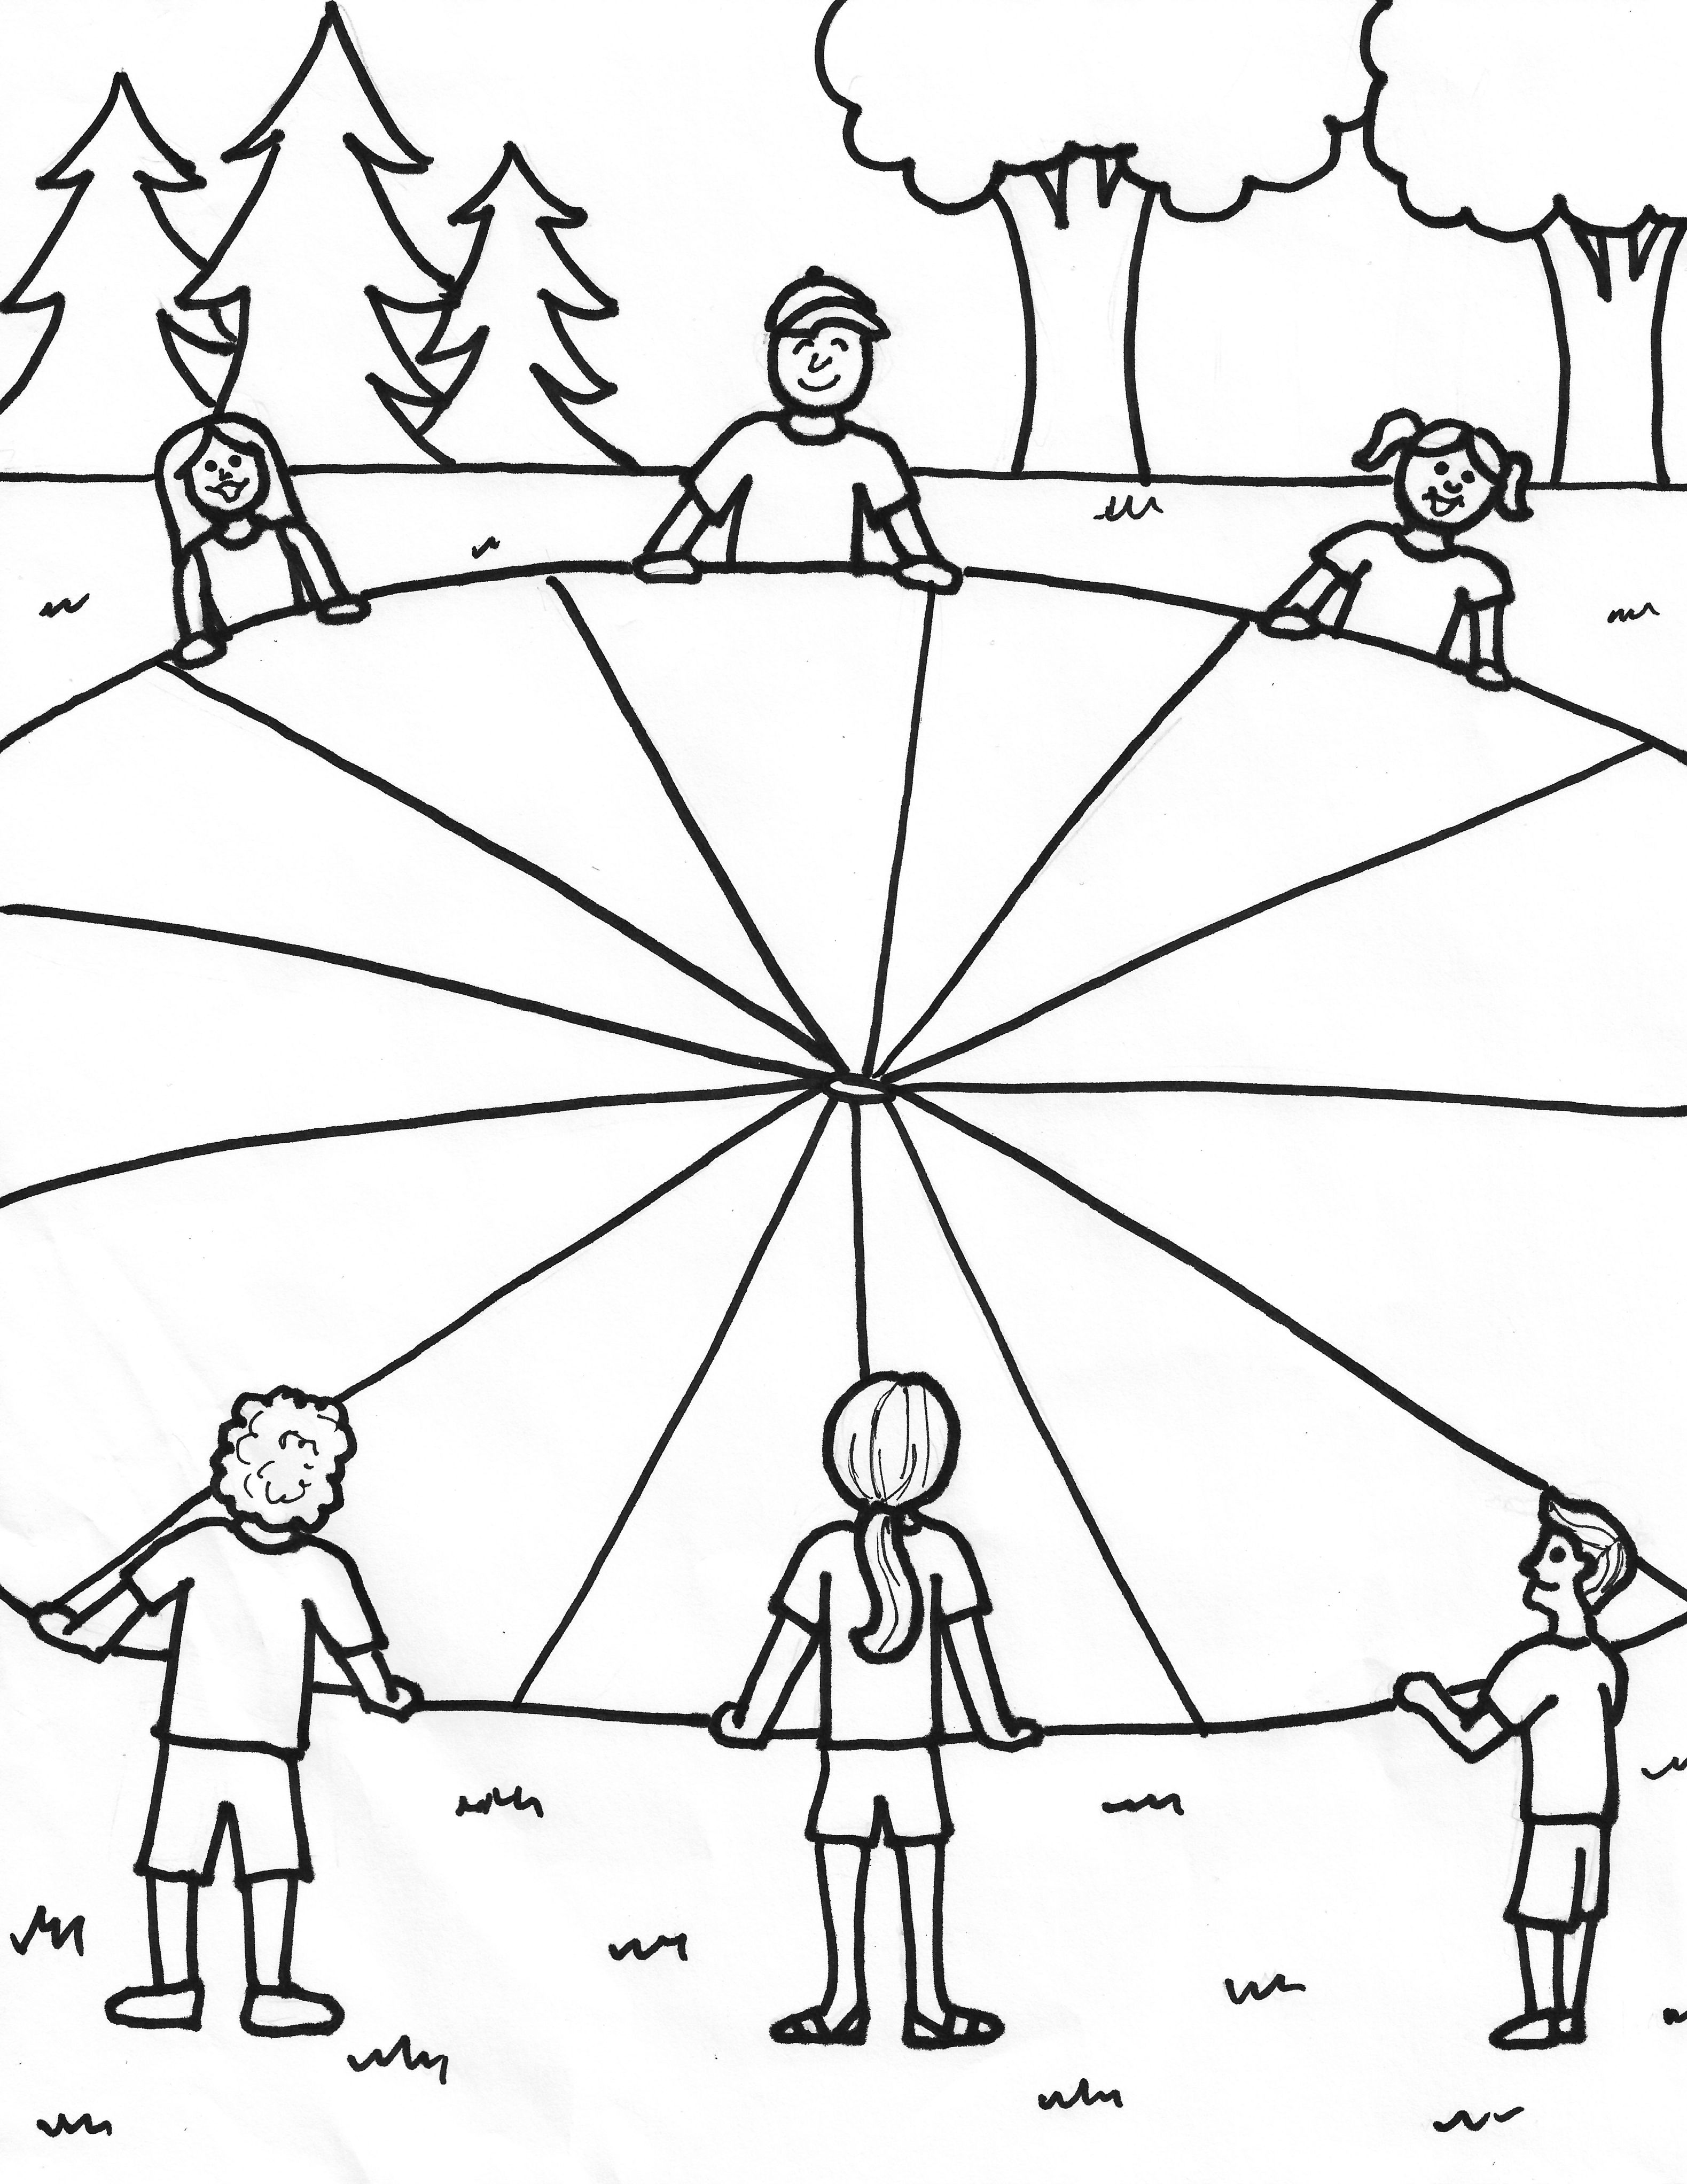 Parachute Games Coloring Page (JPG)